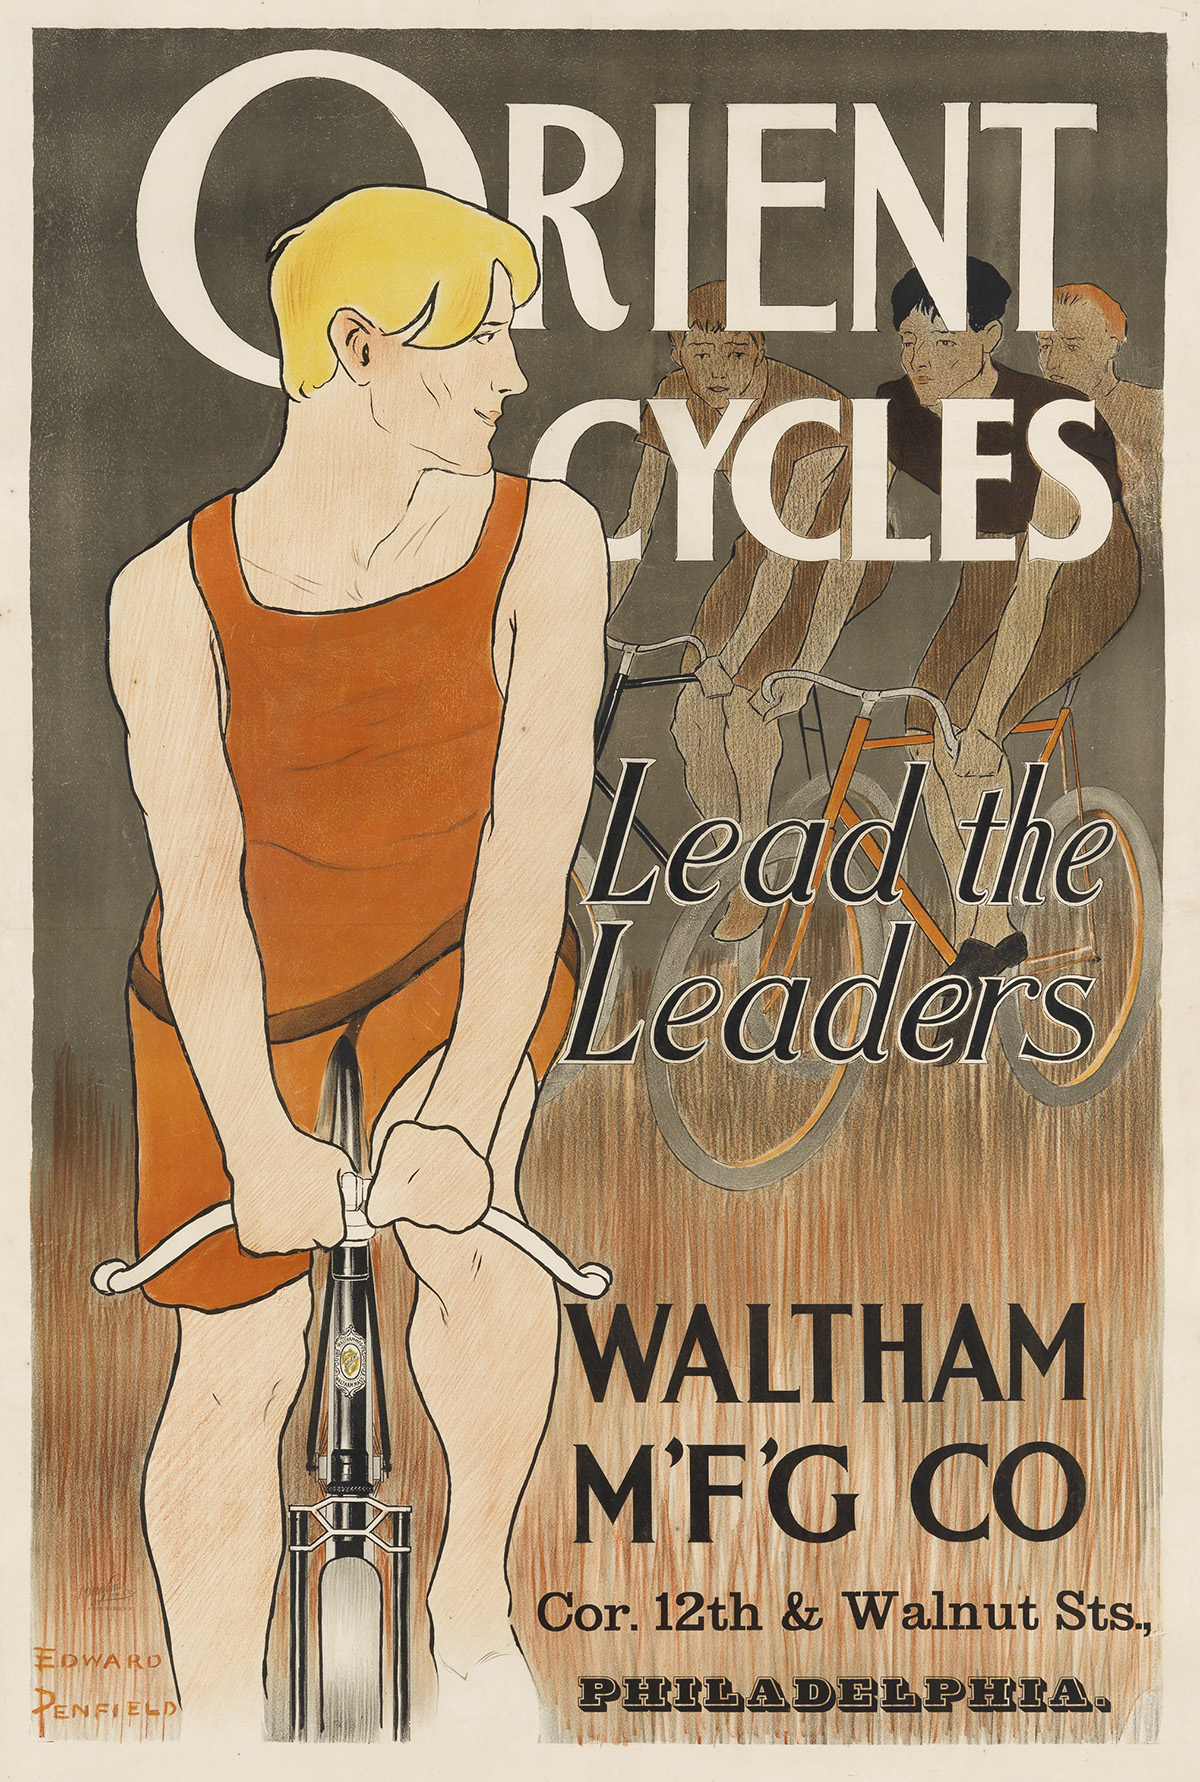 EDWARD-PENFIELD-(1866-1925)-ORIENT-CYCLES--LEAD-THE-LEADERS-